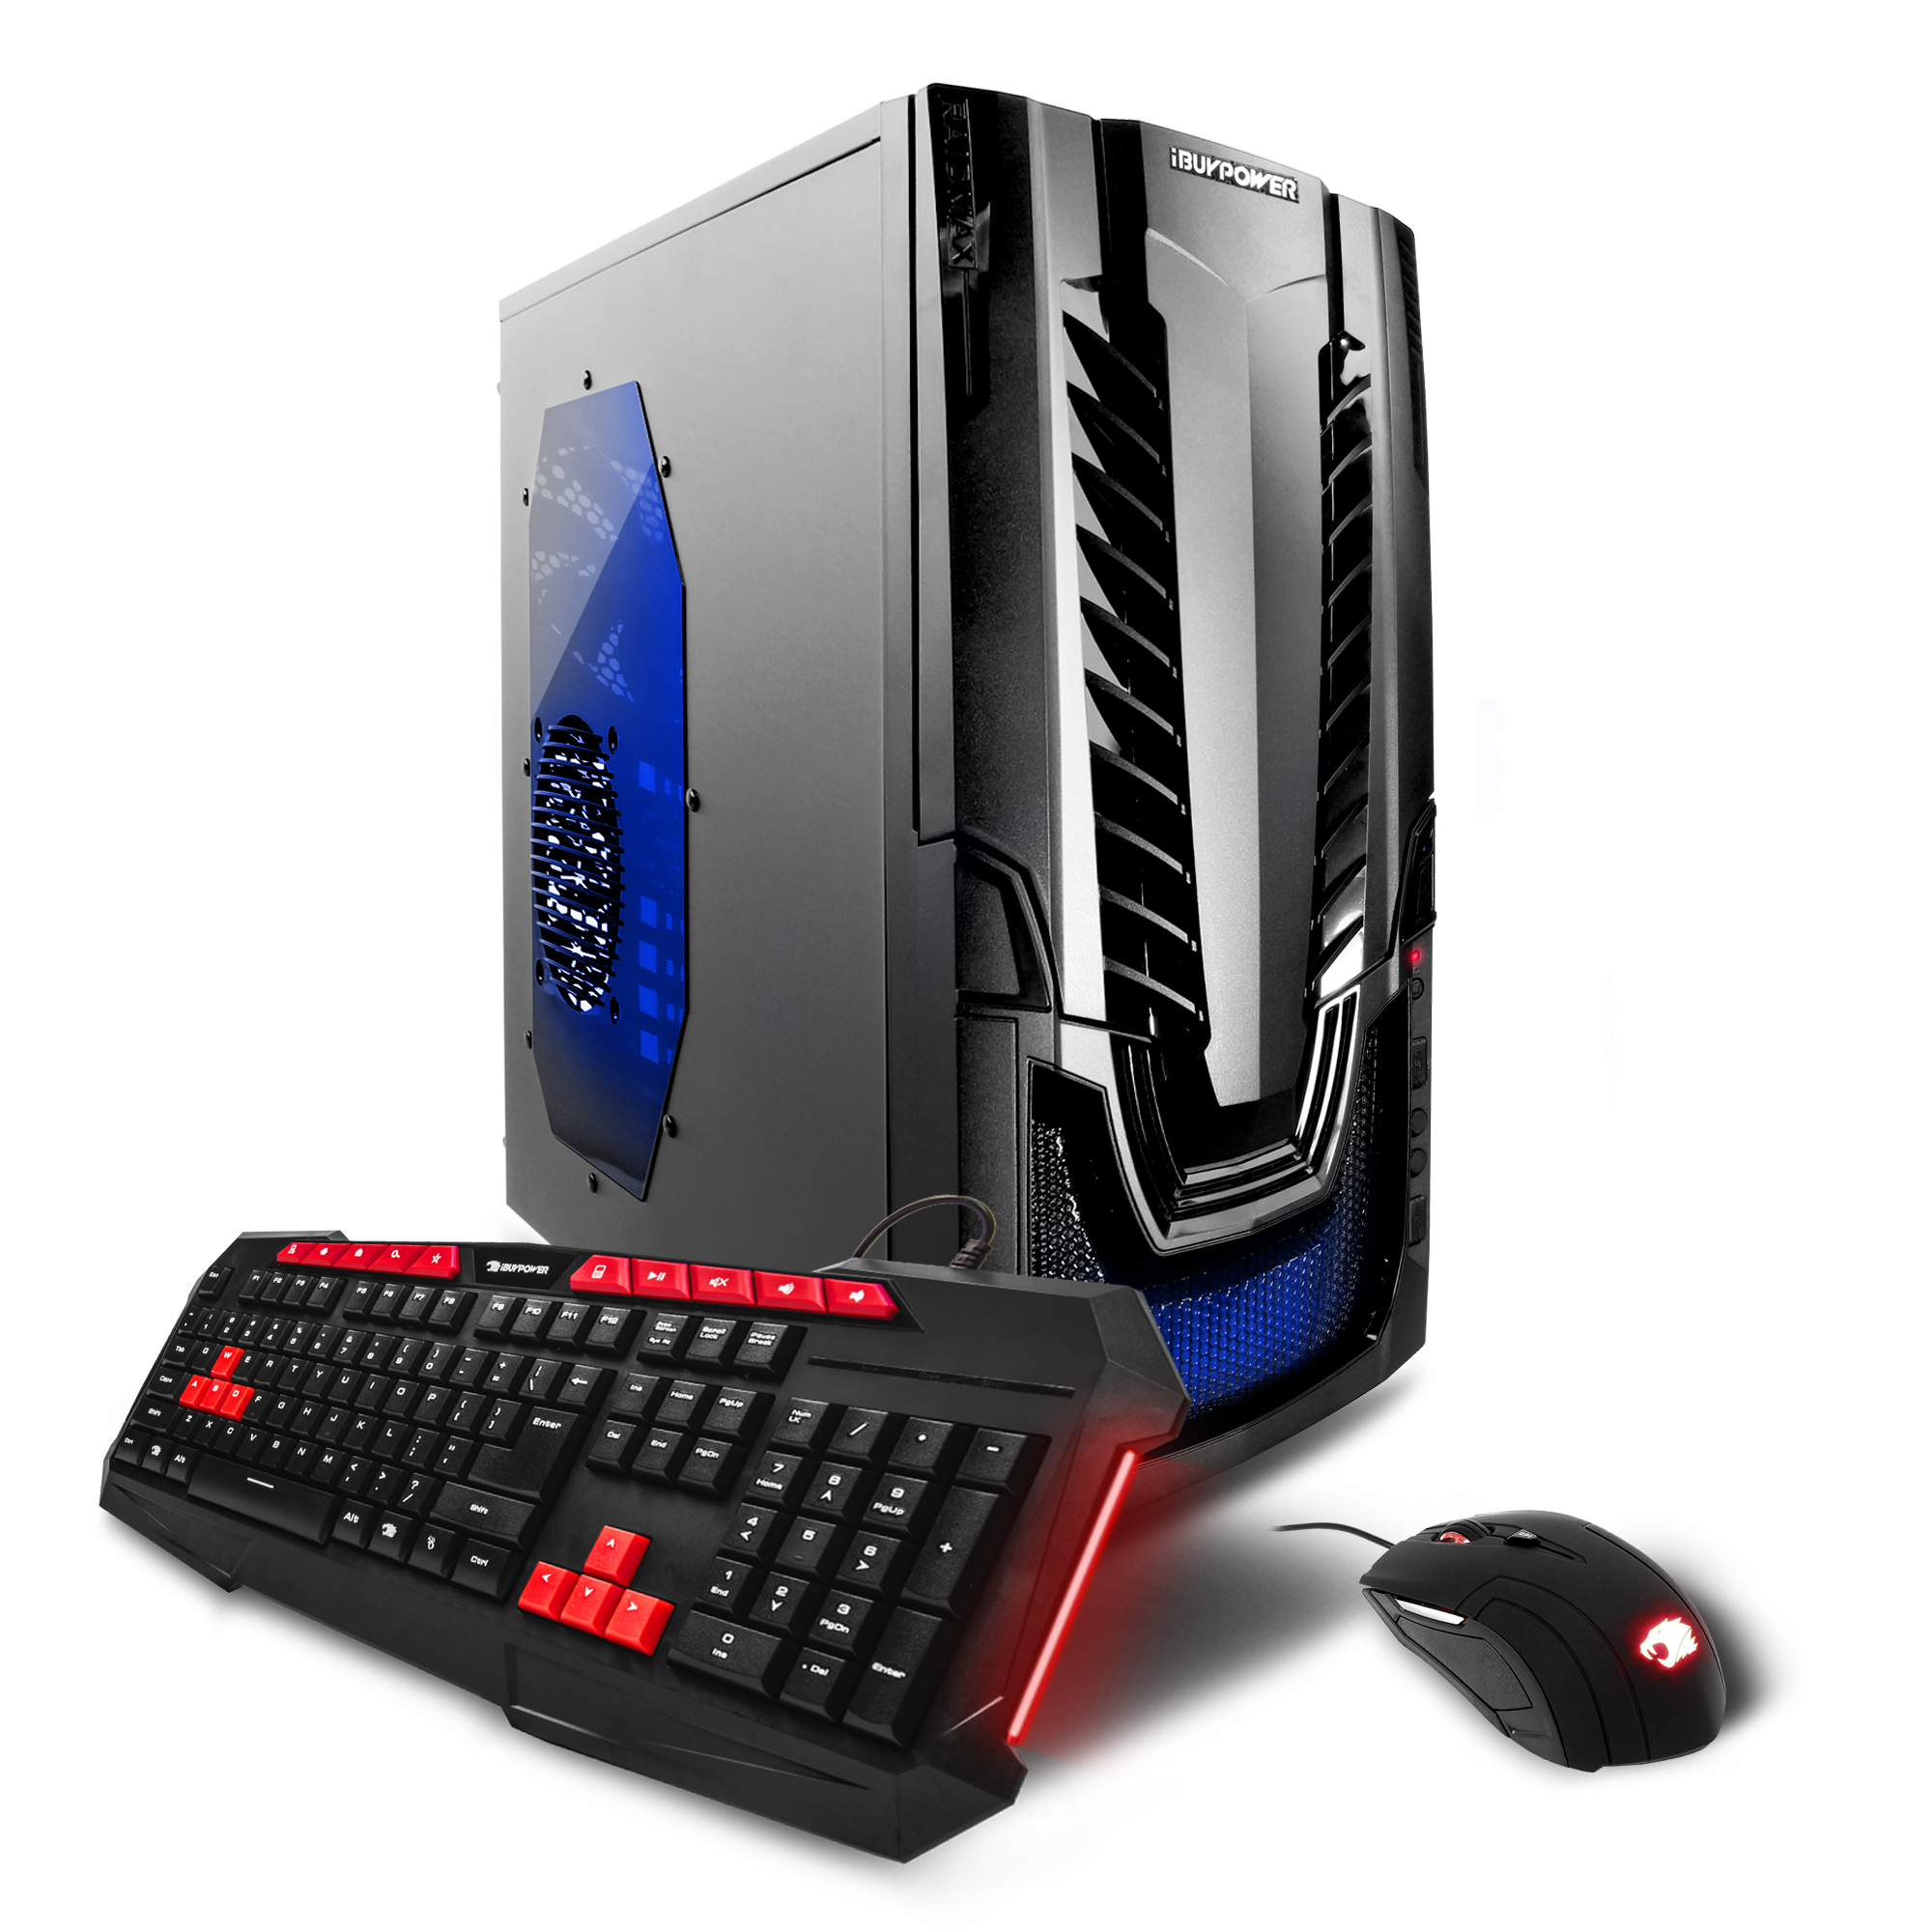 iBUYPOWER WA801Va Gaming Desktop PC with Ryzen 5 1400, GTX 1050 Graphics, 1TB Hard Drive, 120GB SSD, 8GB Memory, and Windows 10 Home. (Monitor Not Included)